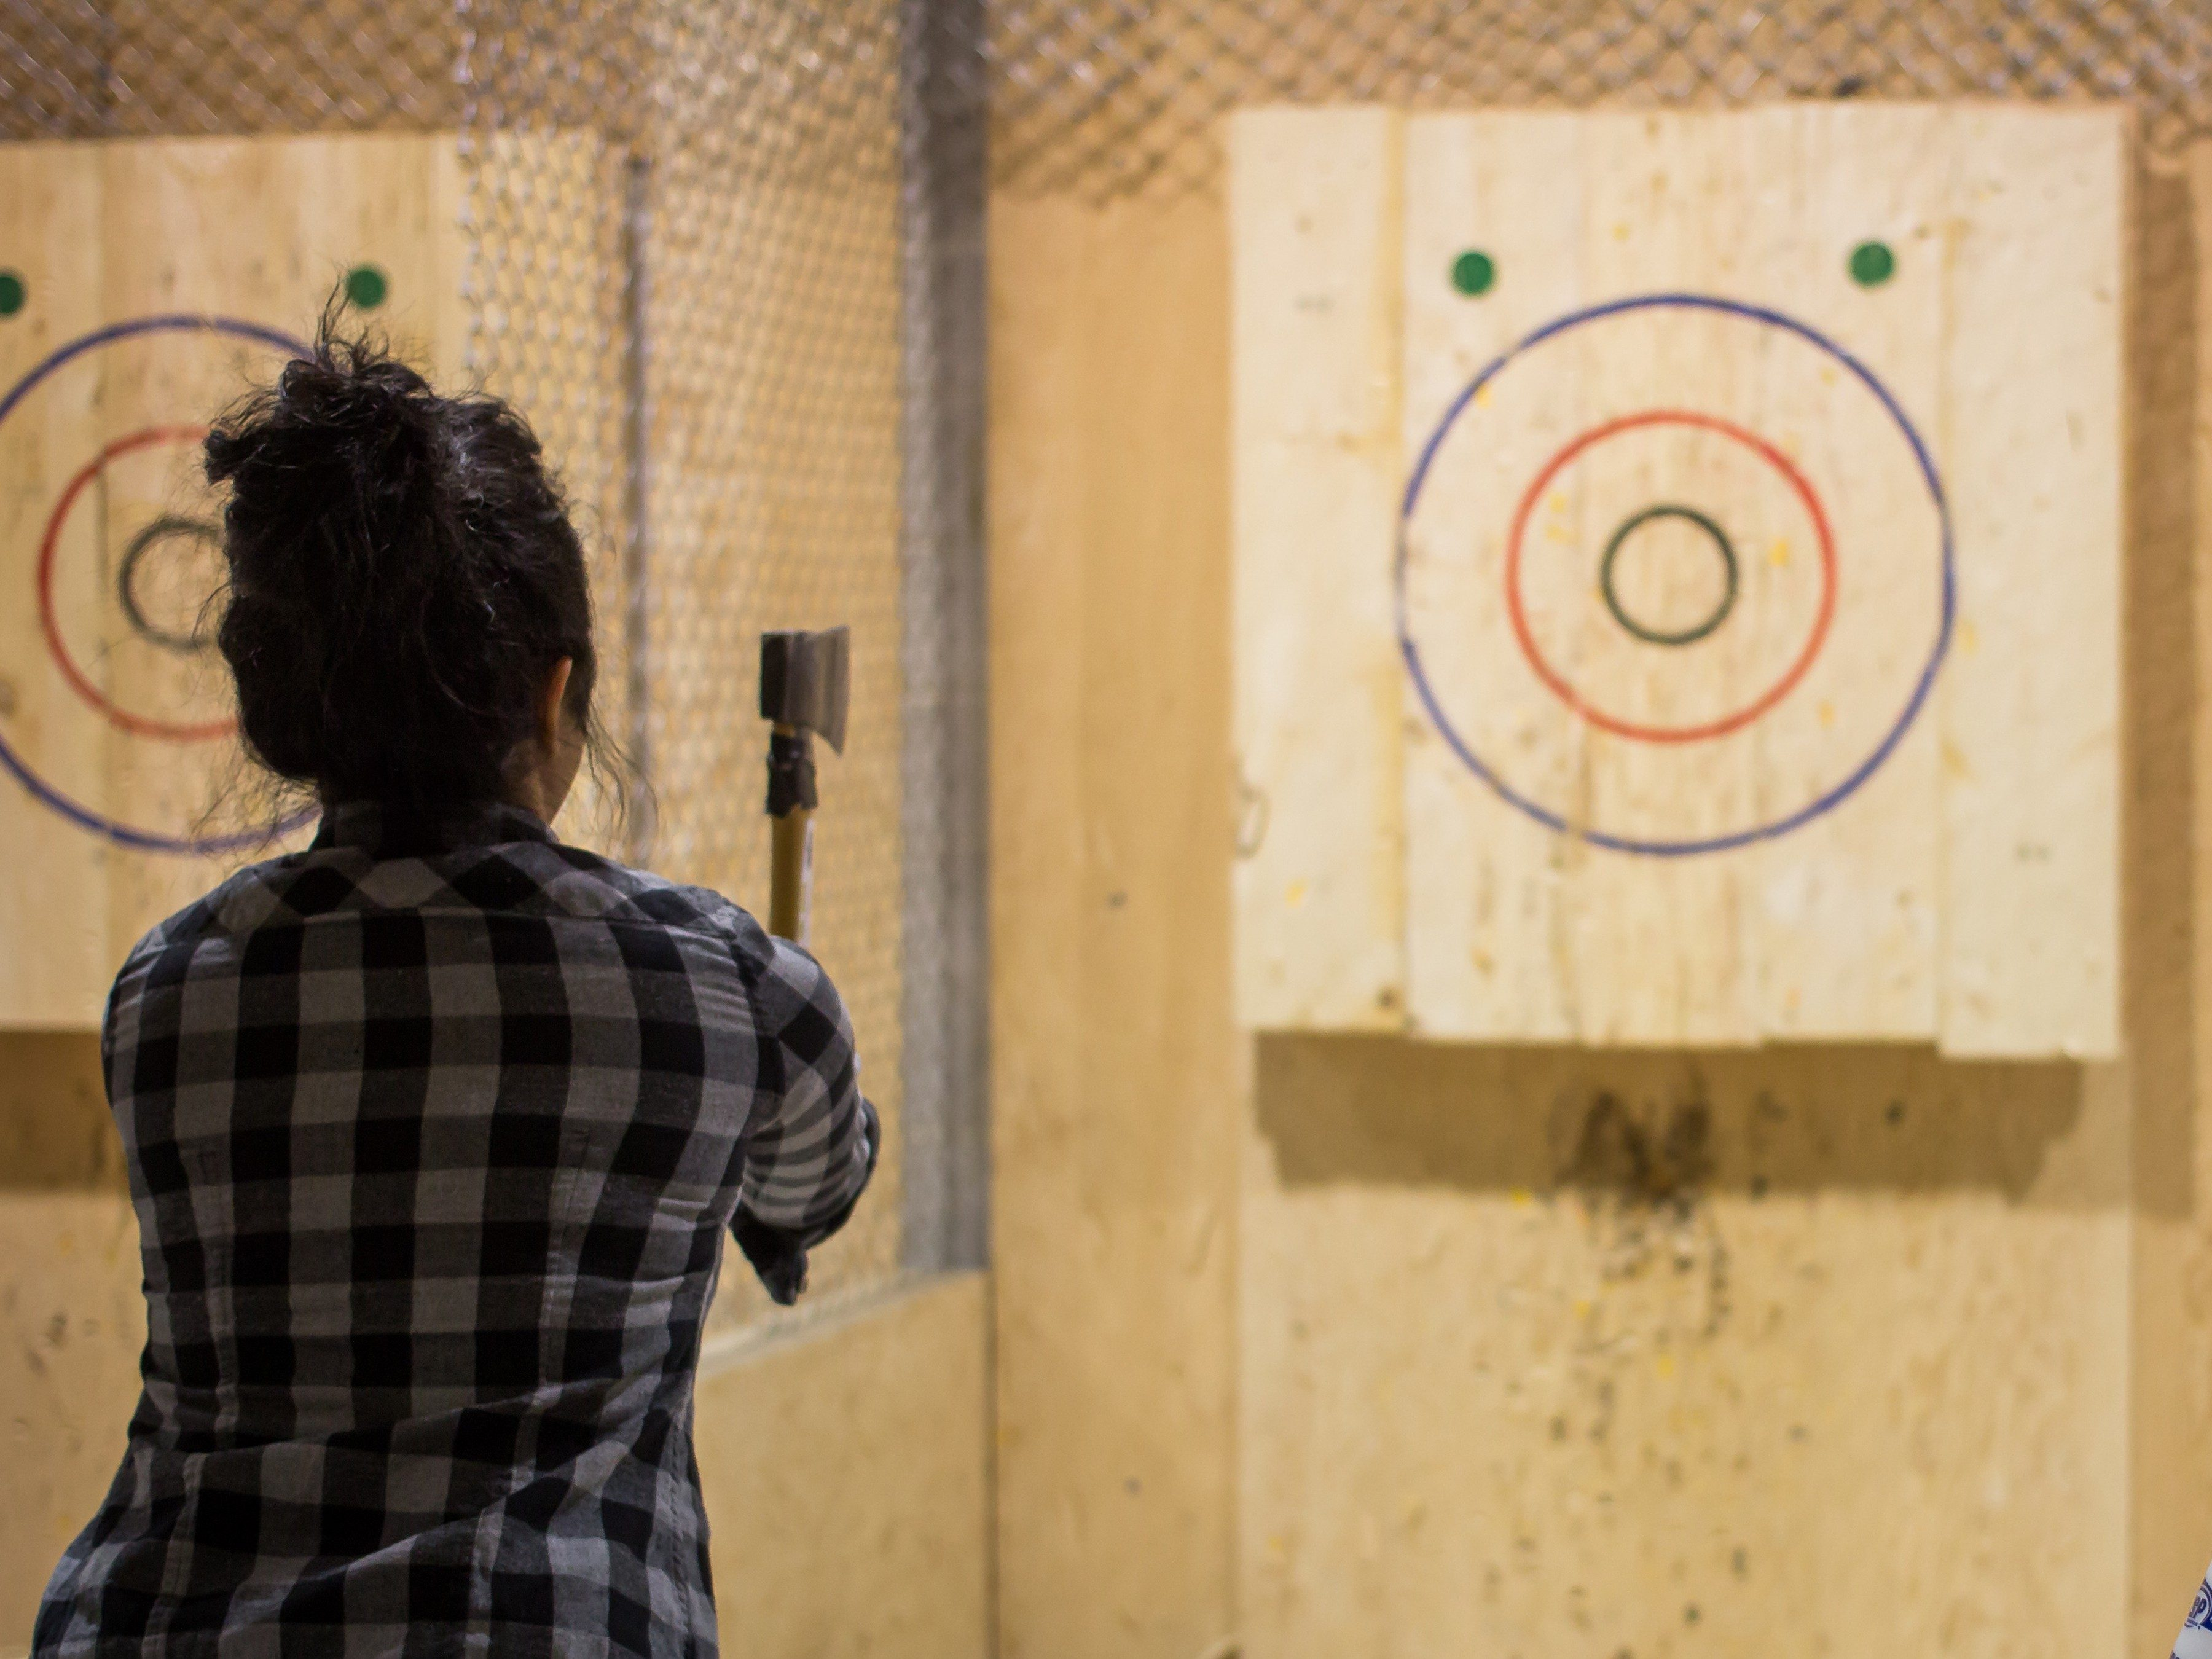 32. Axe throwing